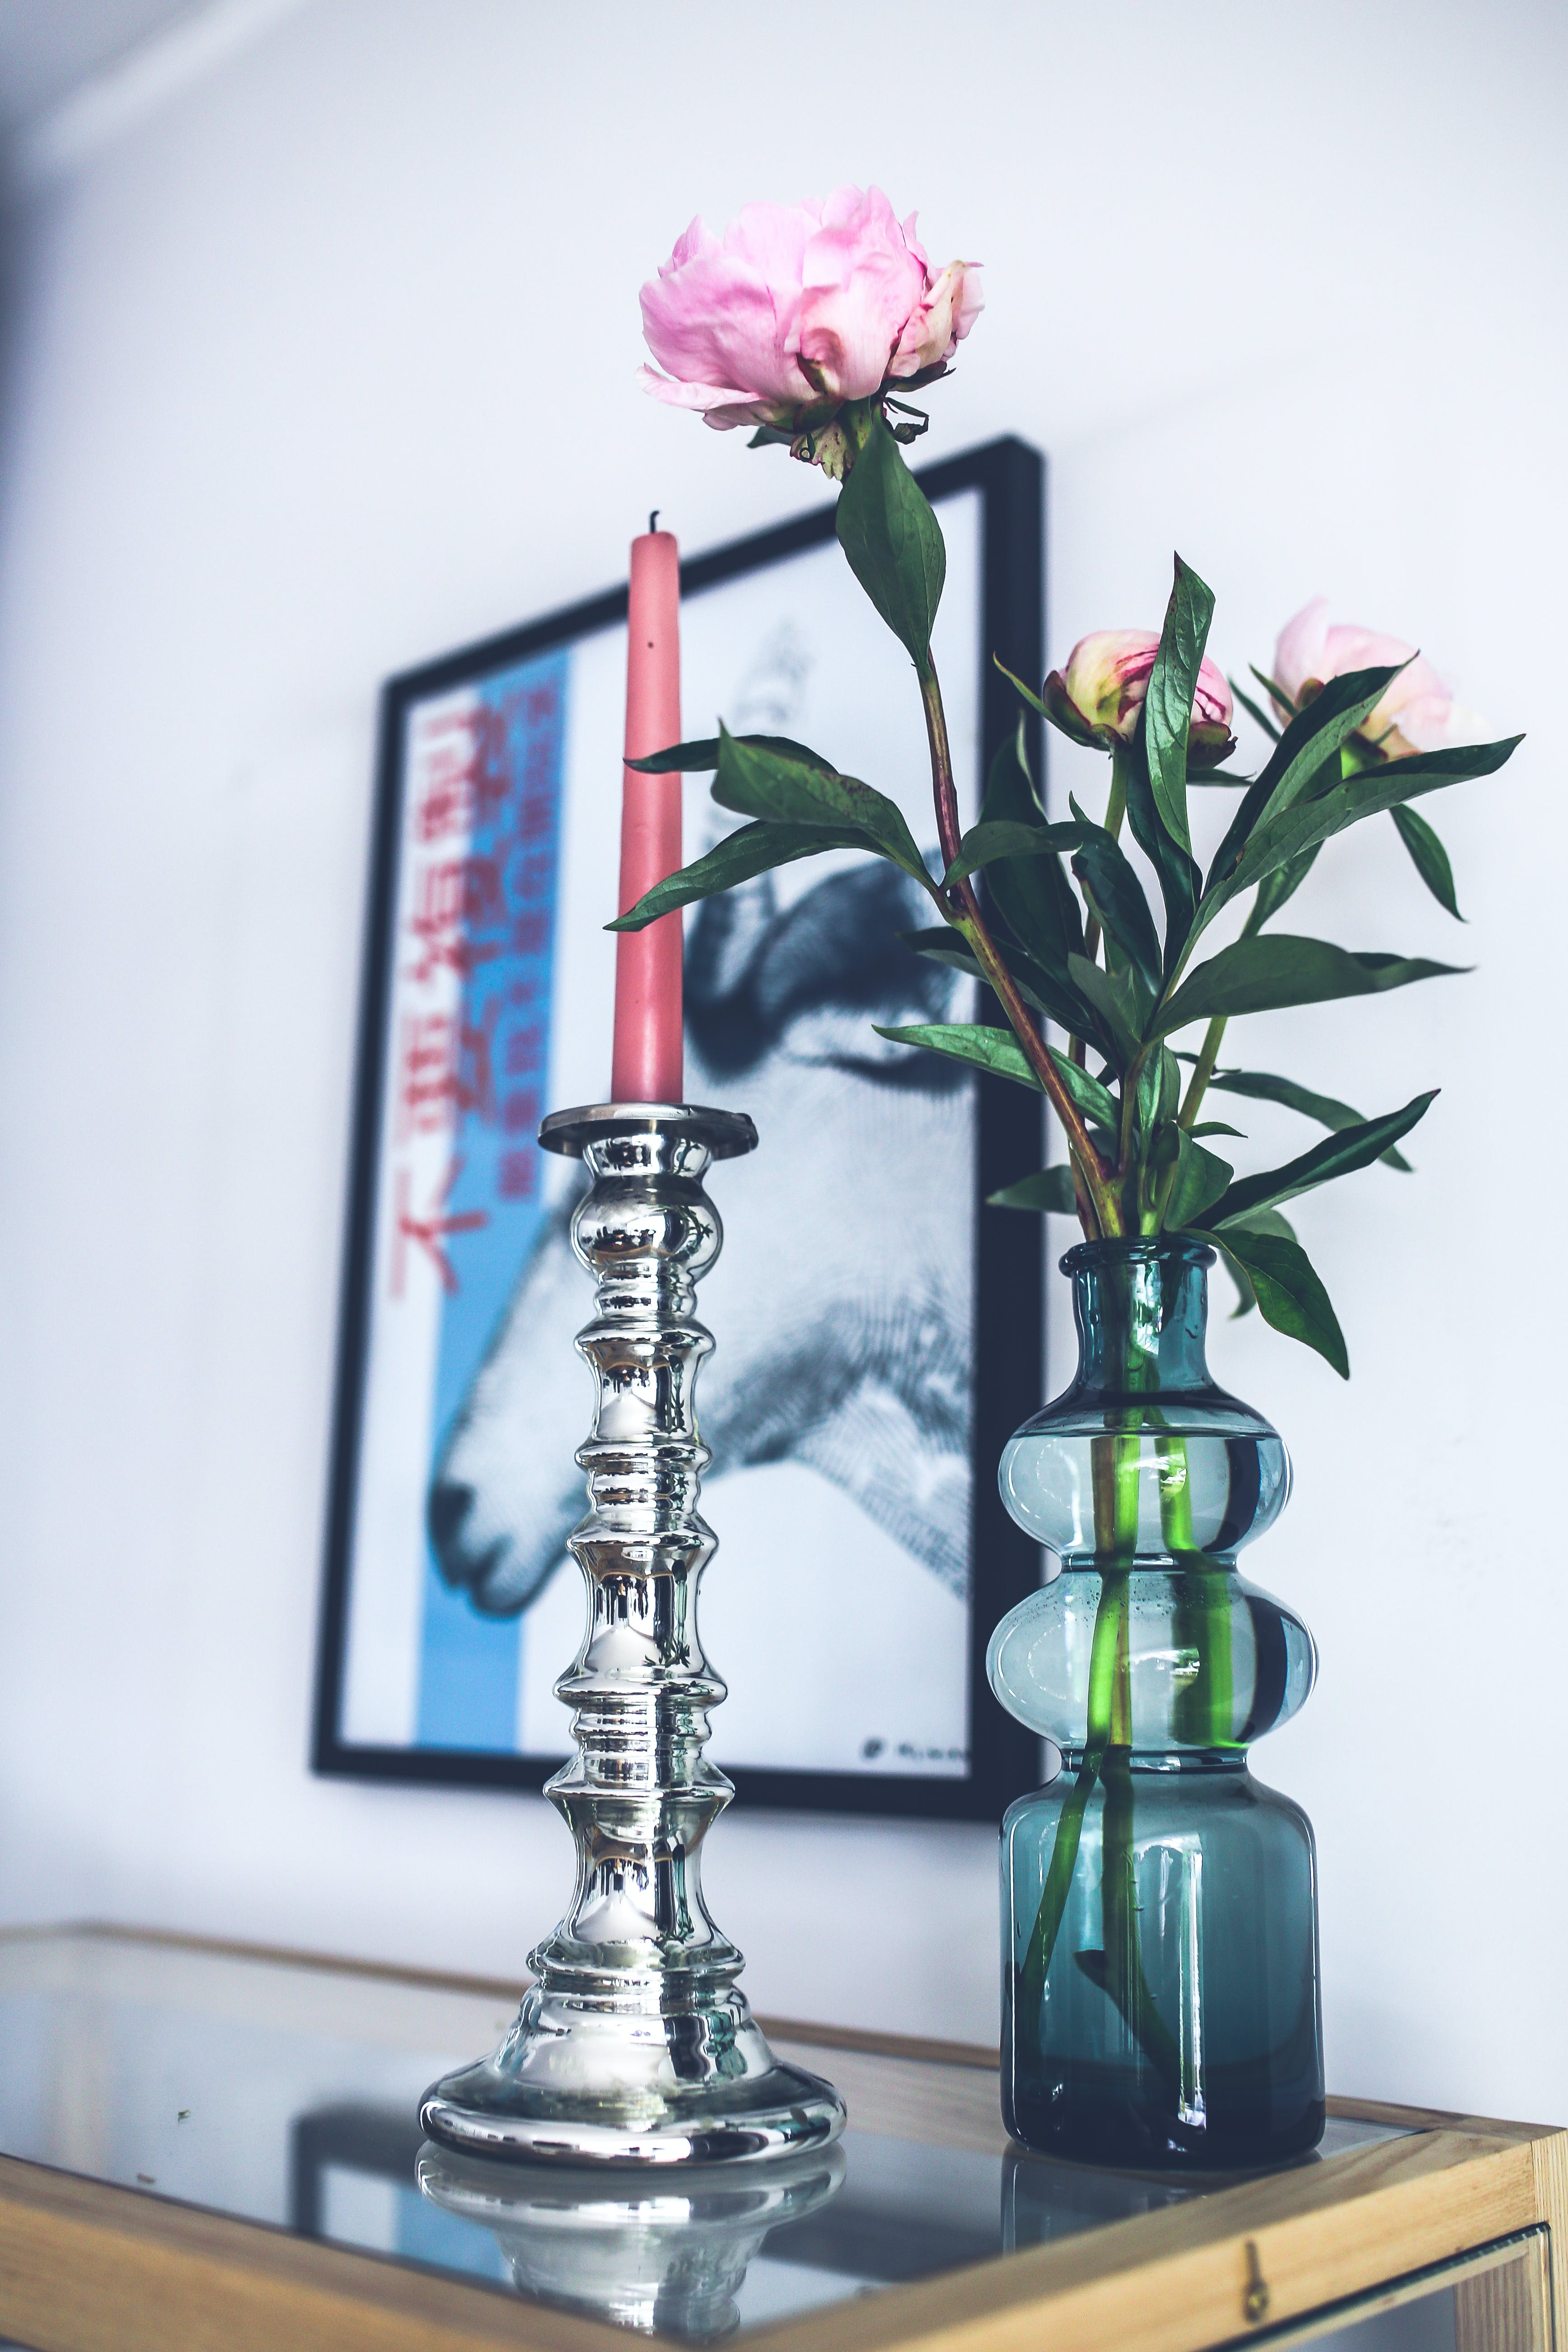 Silver candlestick & pink peonies